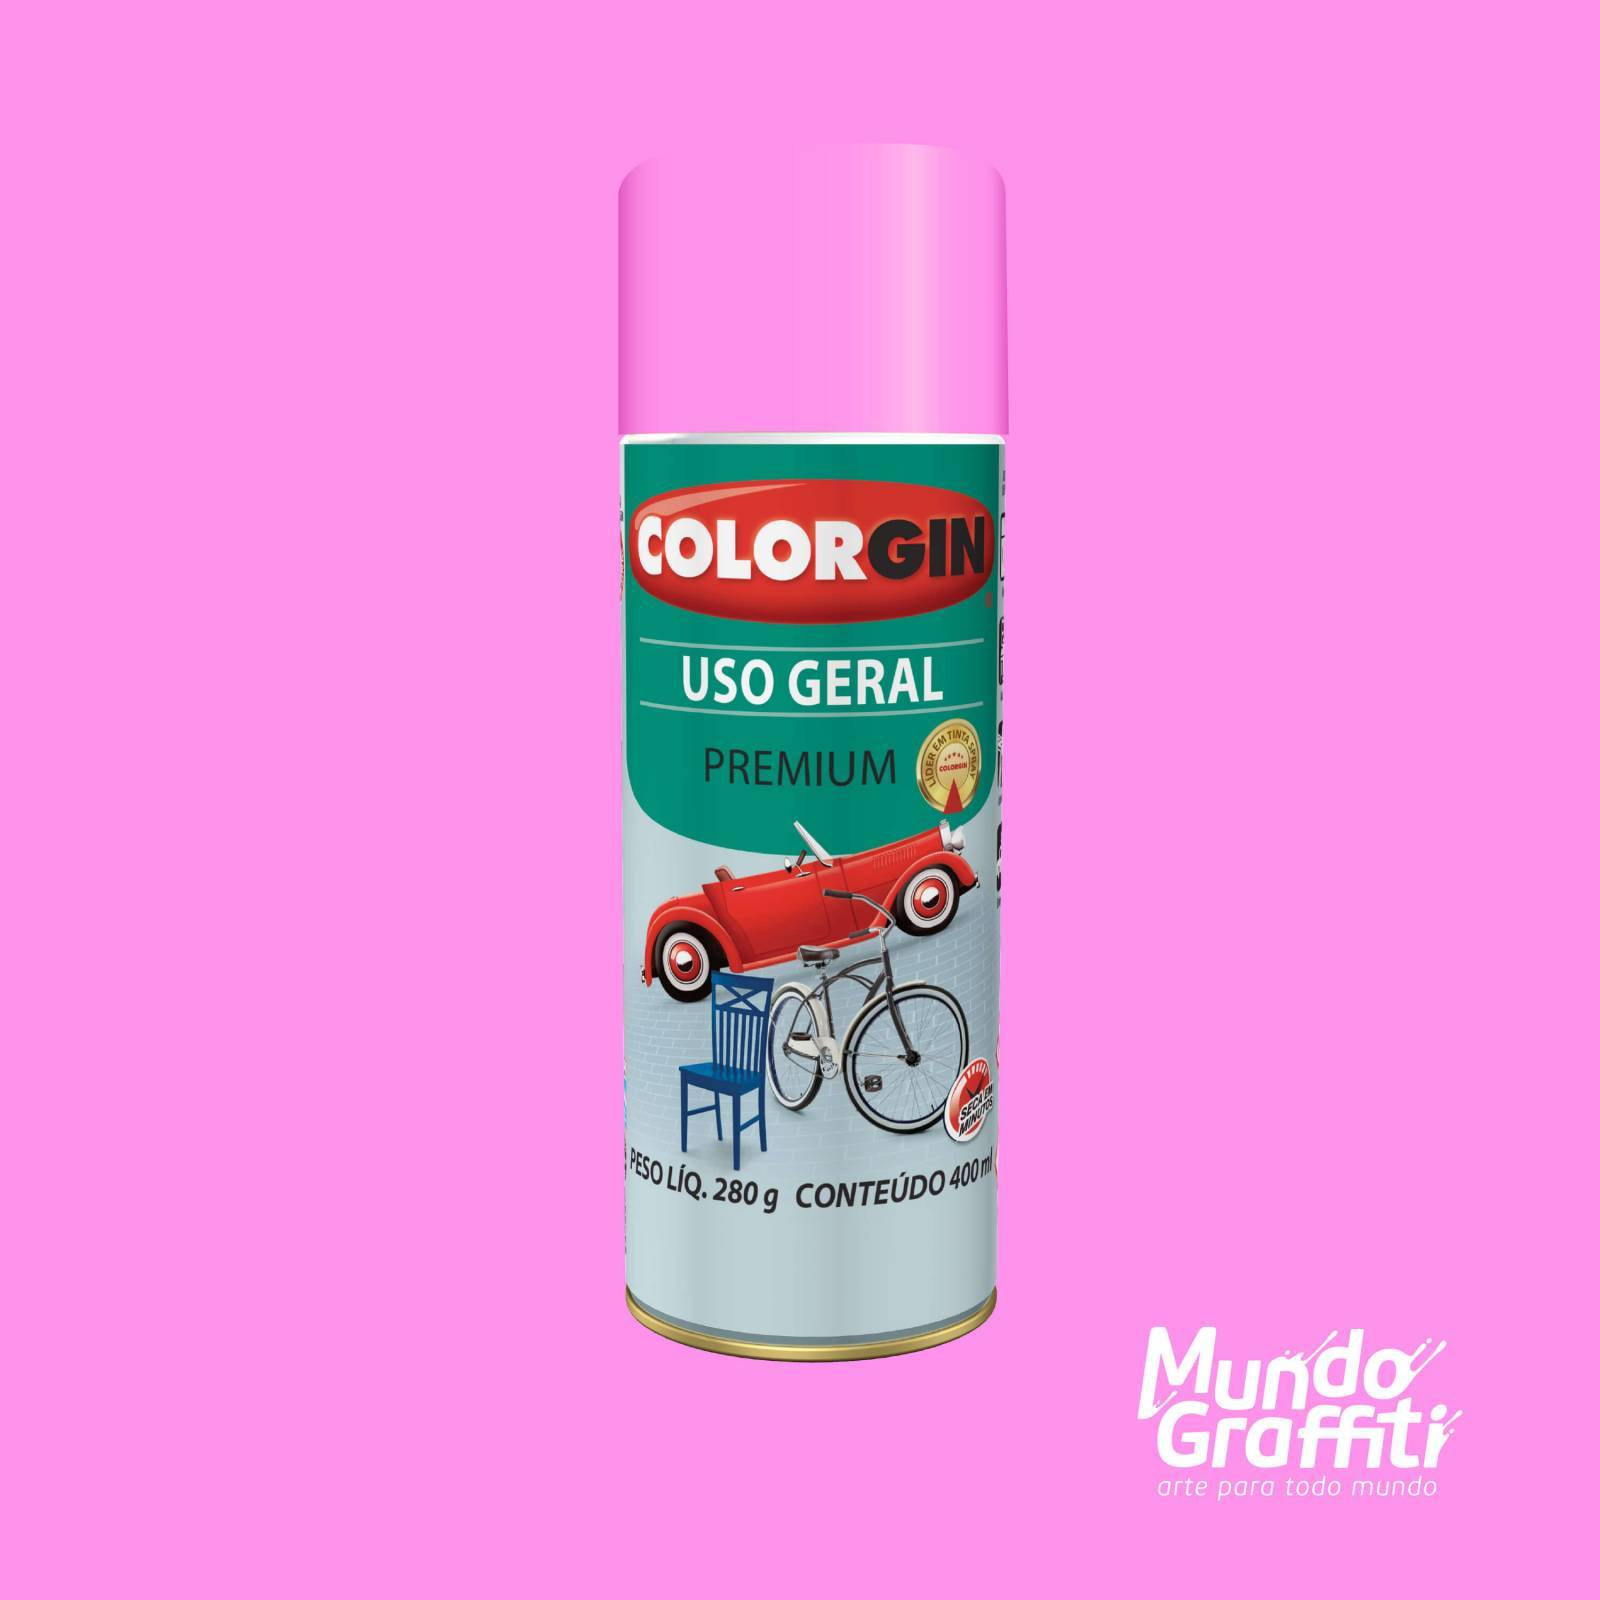 Tinta Spray Colorgin Uso Geral 56061 Rosa GBR 400ml - Mundo Graffiti